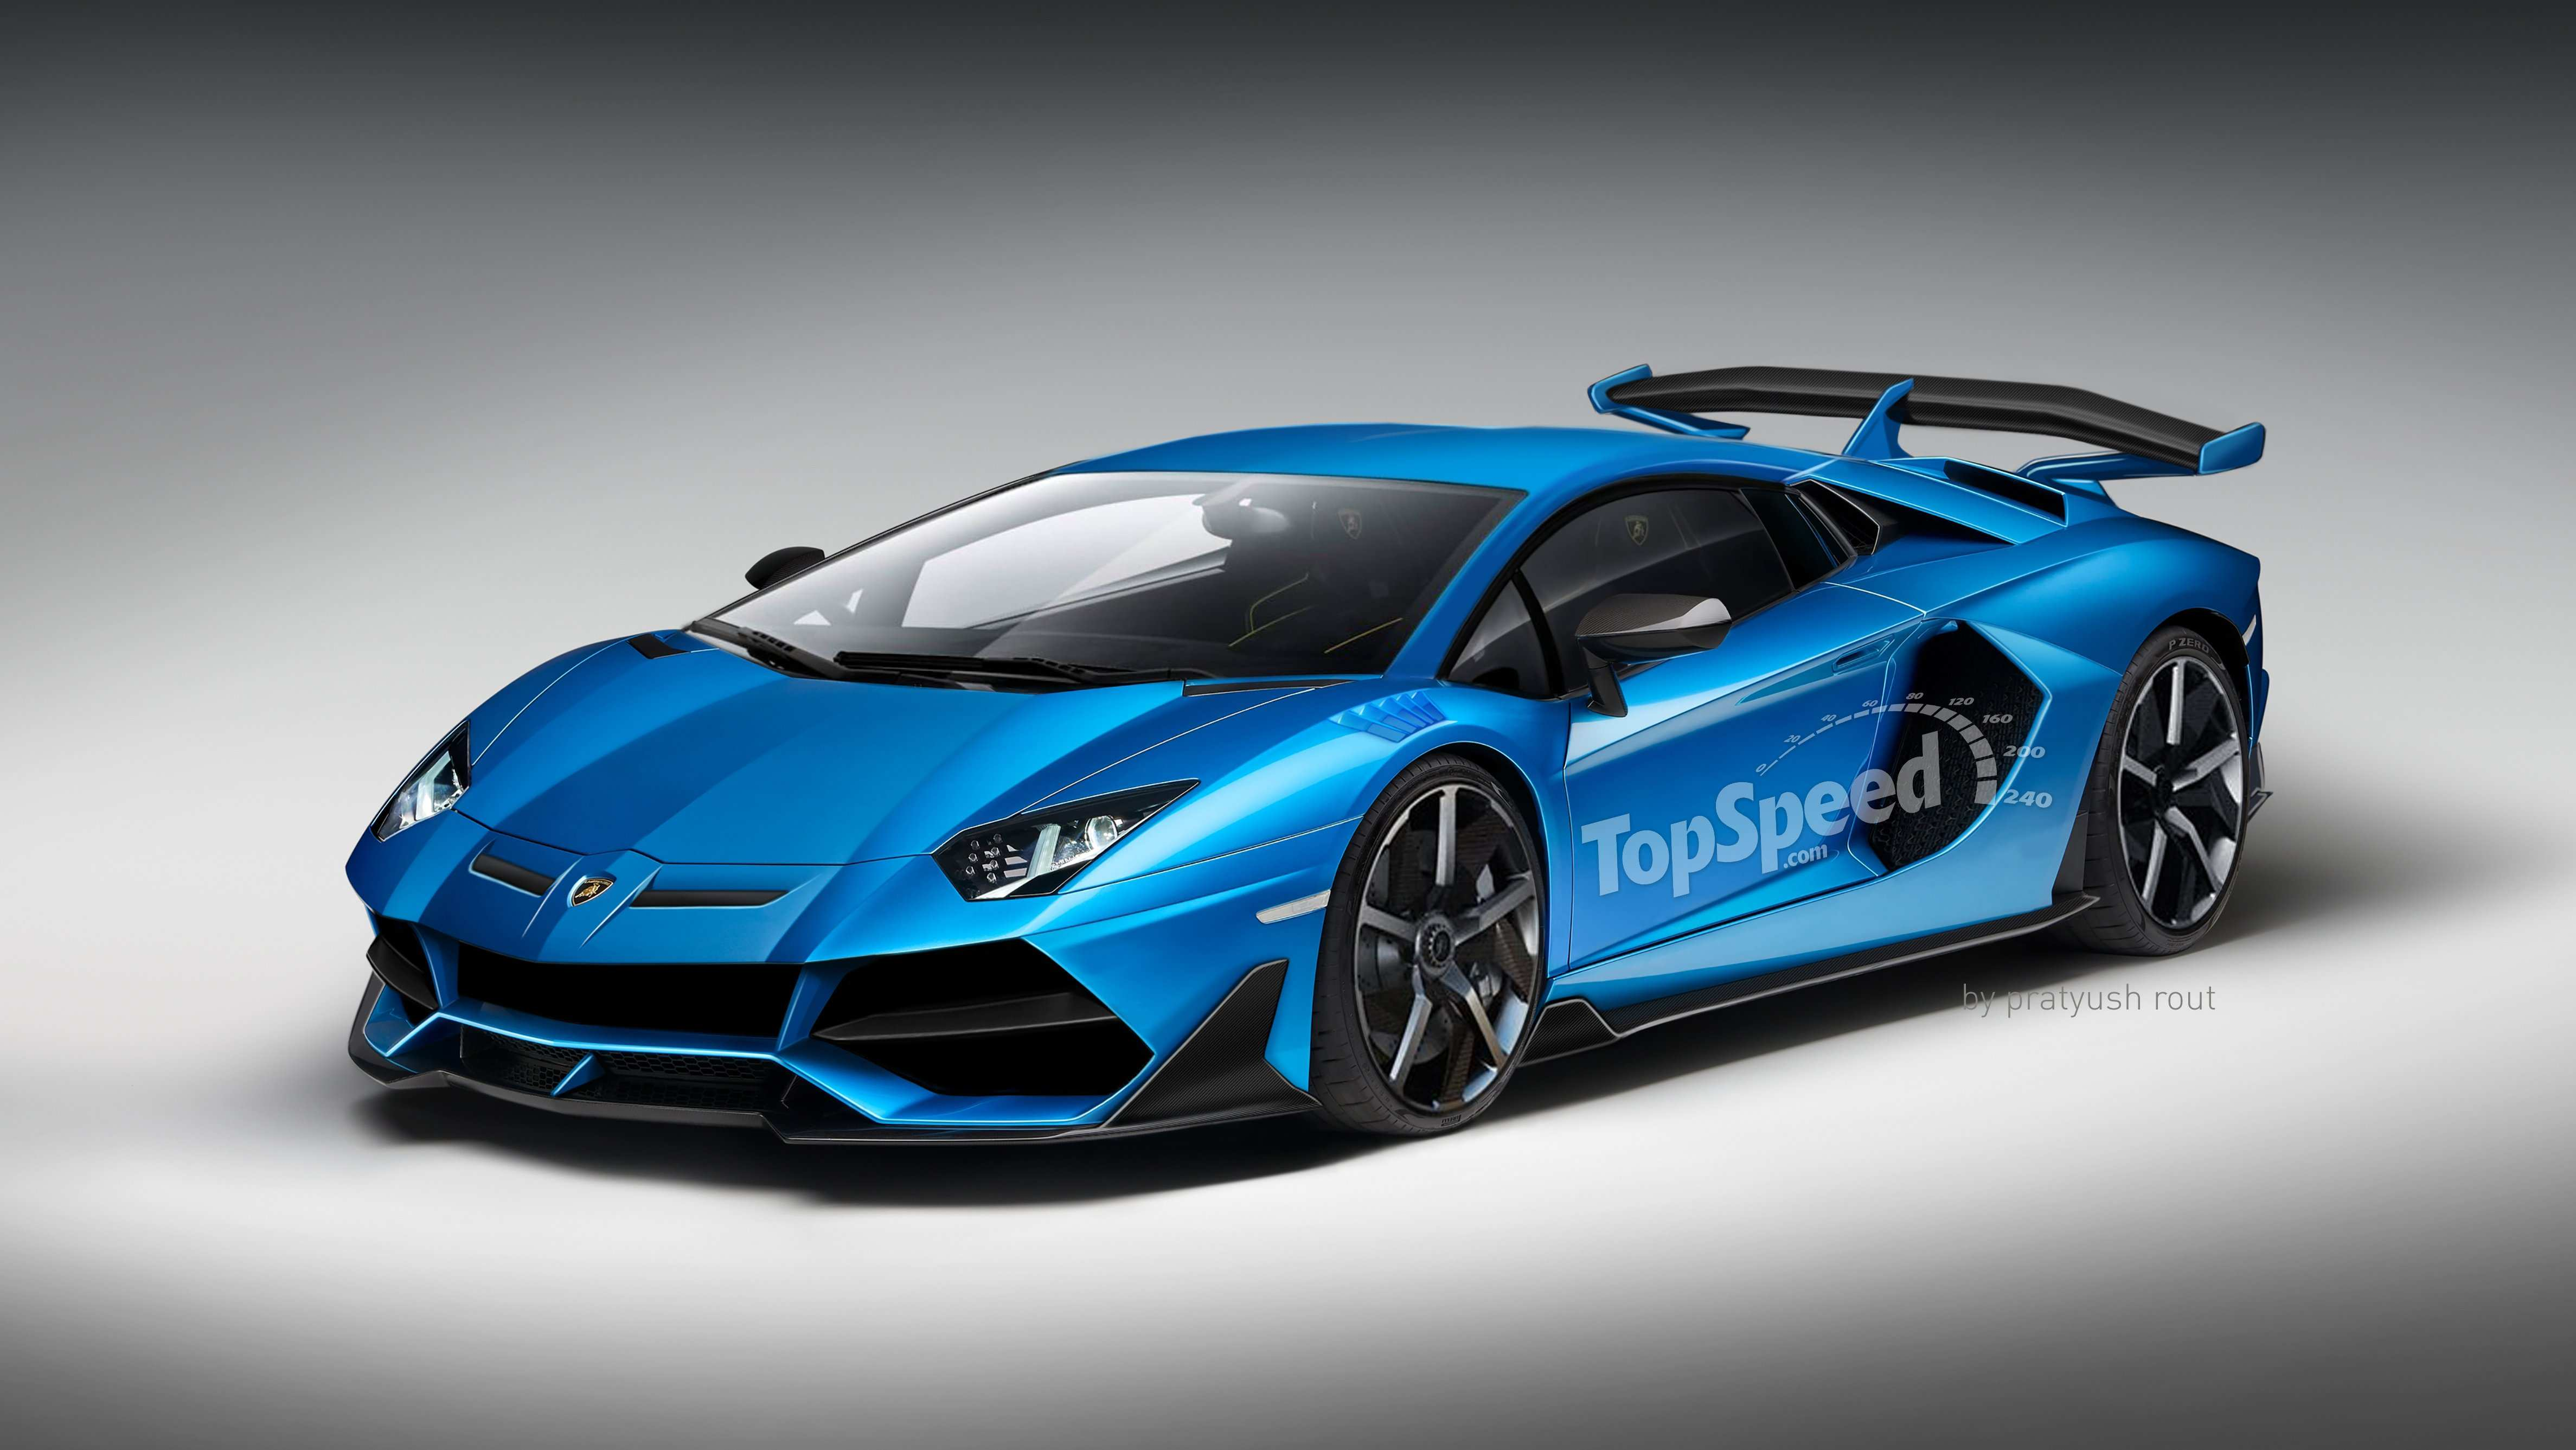 84 New 2019 Lamborghini Performante Release Date for 2019 Lamborghini Performante